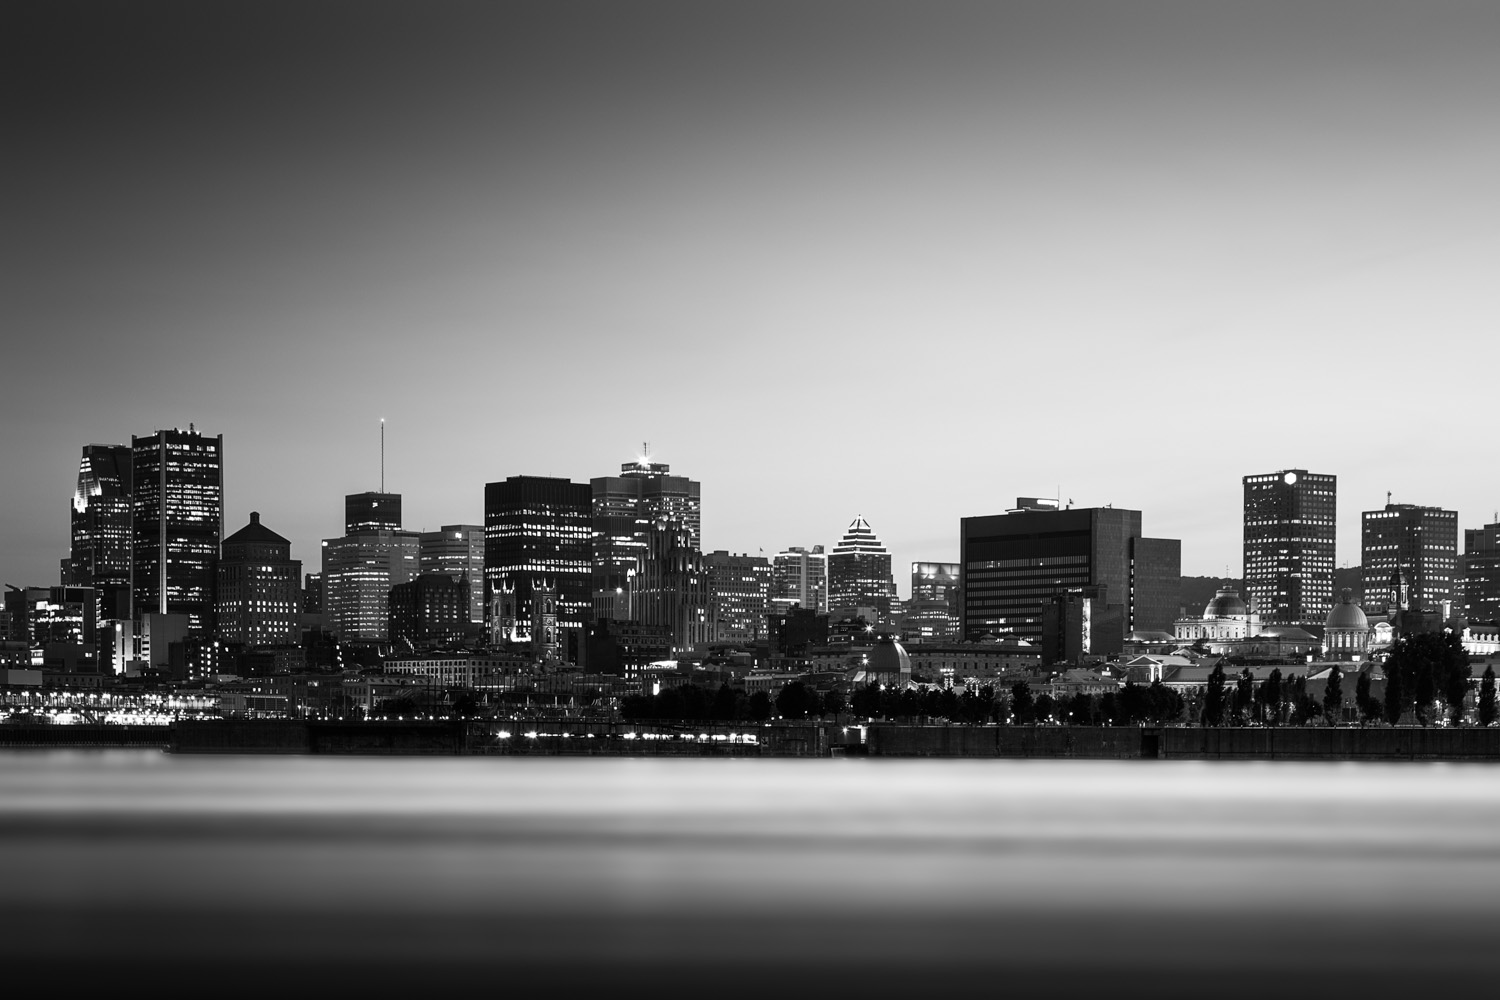 Montreal seen from Jean Drapeau